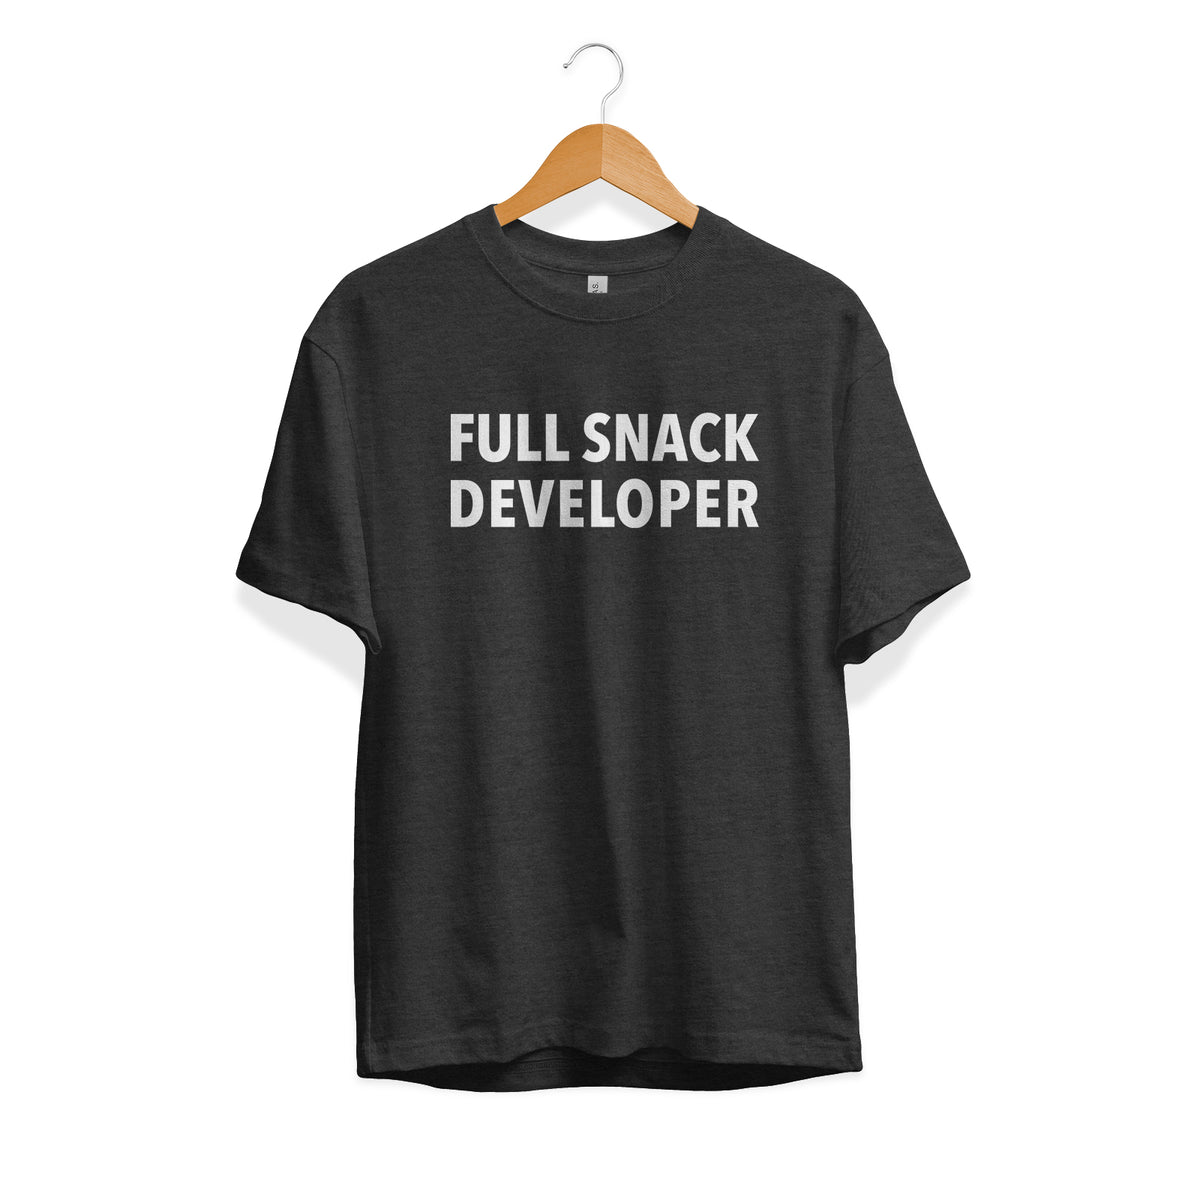 Full Snack Developer Tee